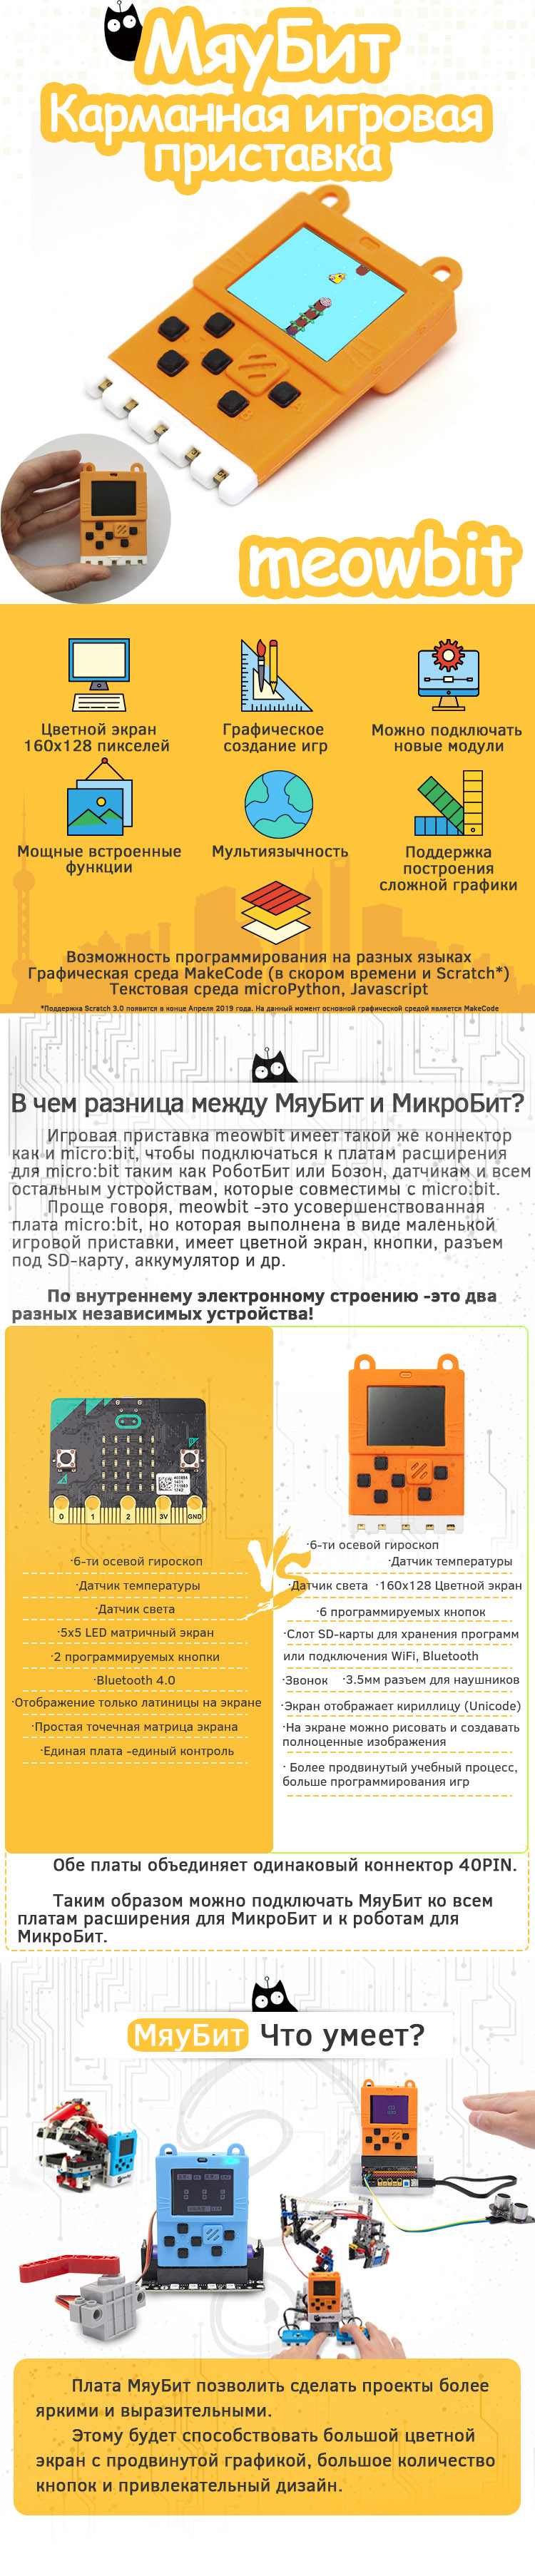 meowbit-description-rus-part1-2